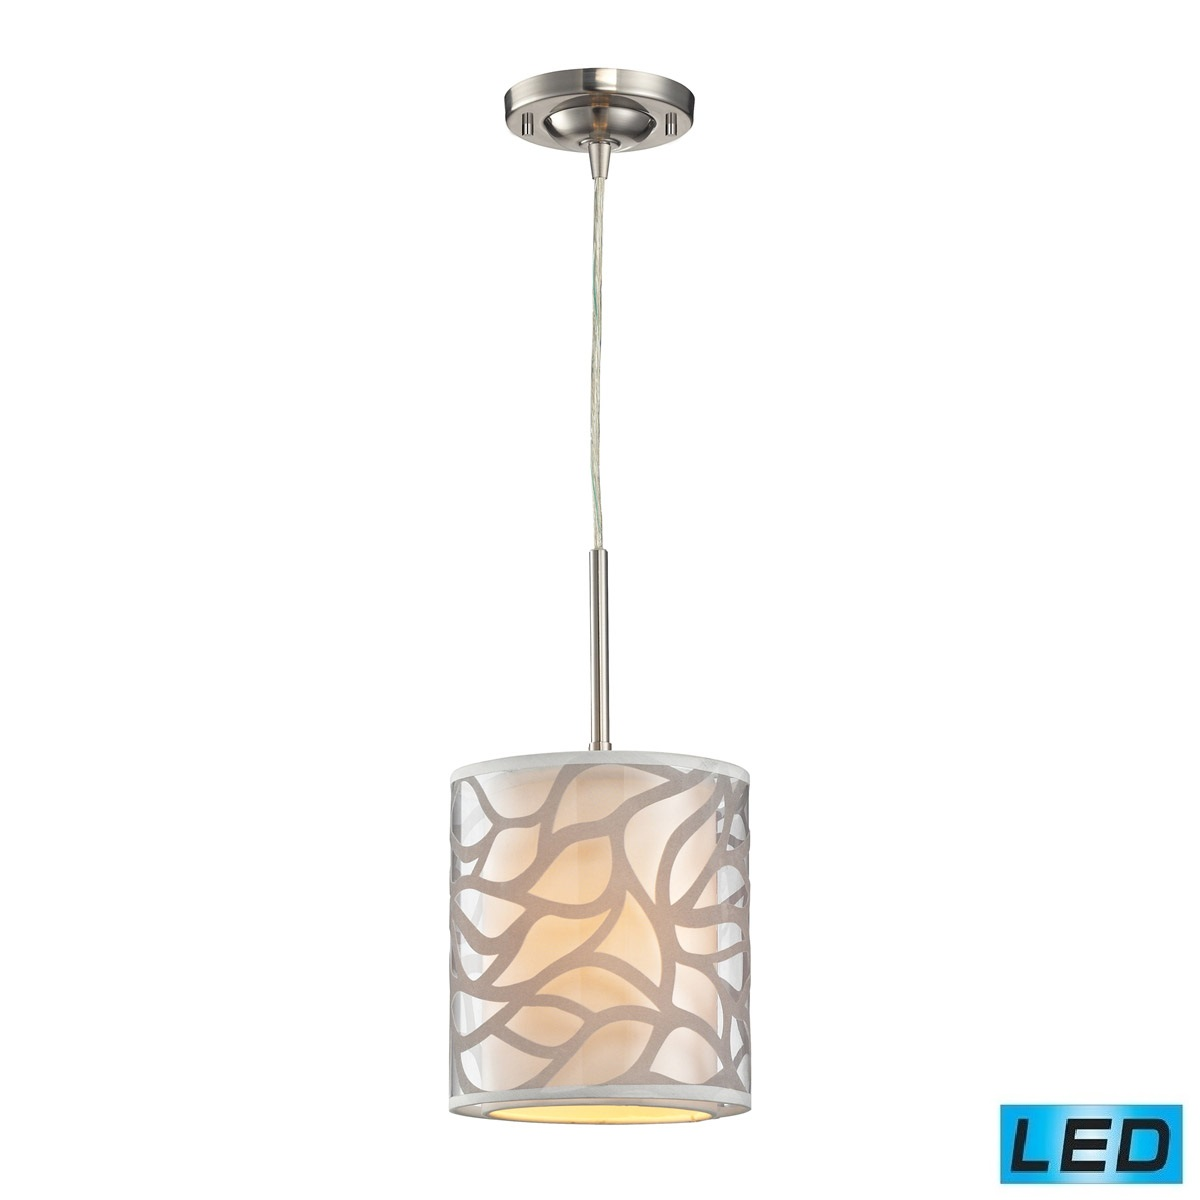 ELK Lighting Autumn Breeze 53000 Pendant Lights Brooklyn,New York by Accentuations Brand